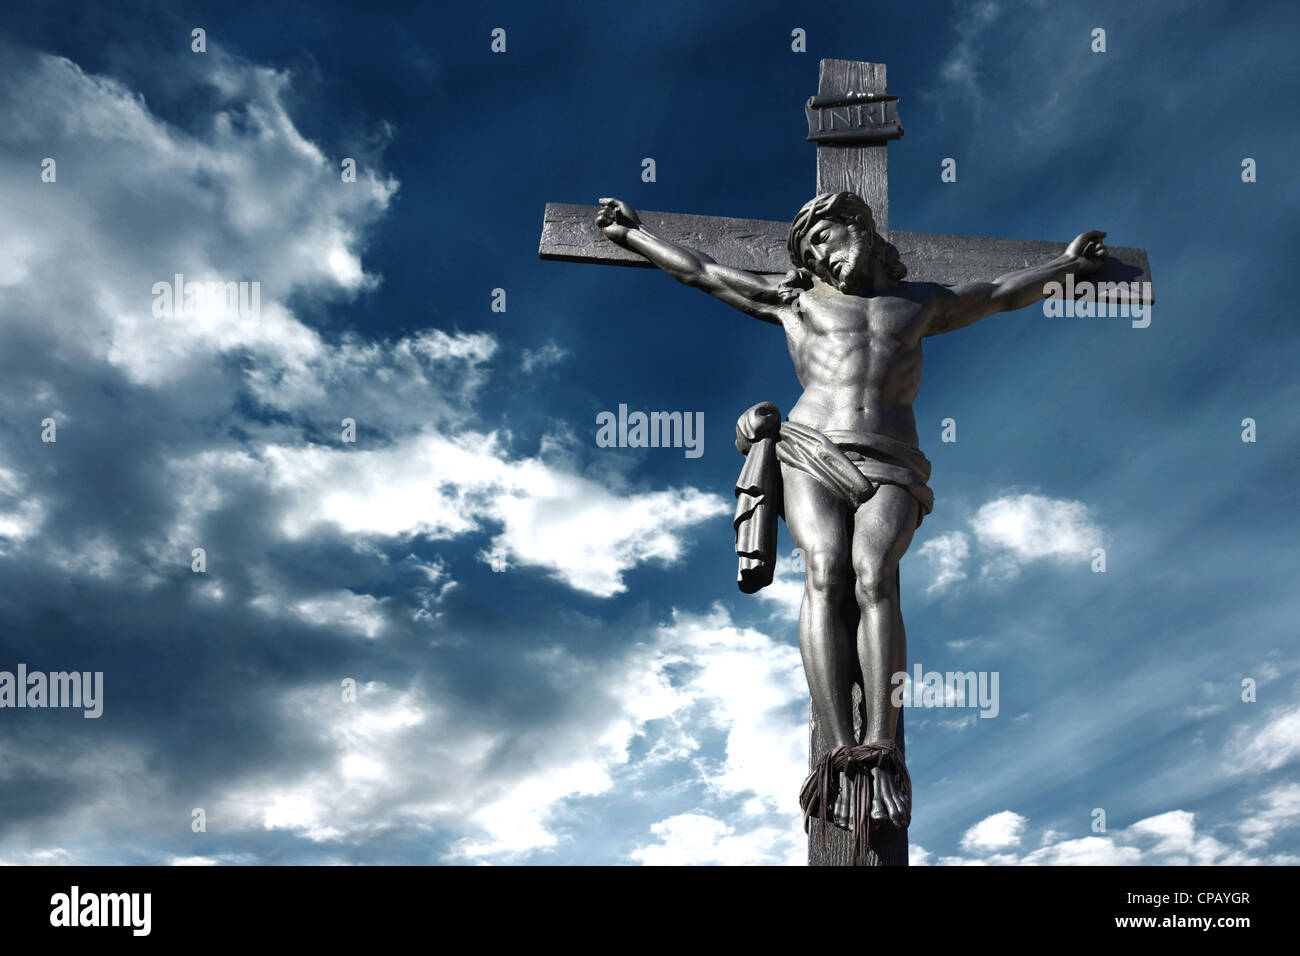 Illustration of the crucifixion of Jesus Christ with a stormy sky recalling the anger of God - Stock Image